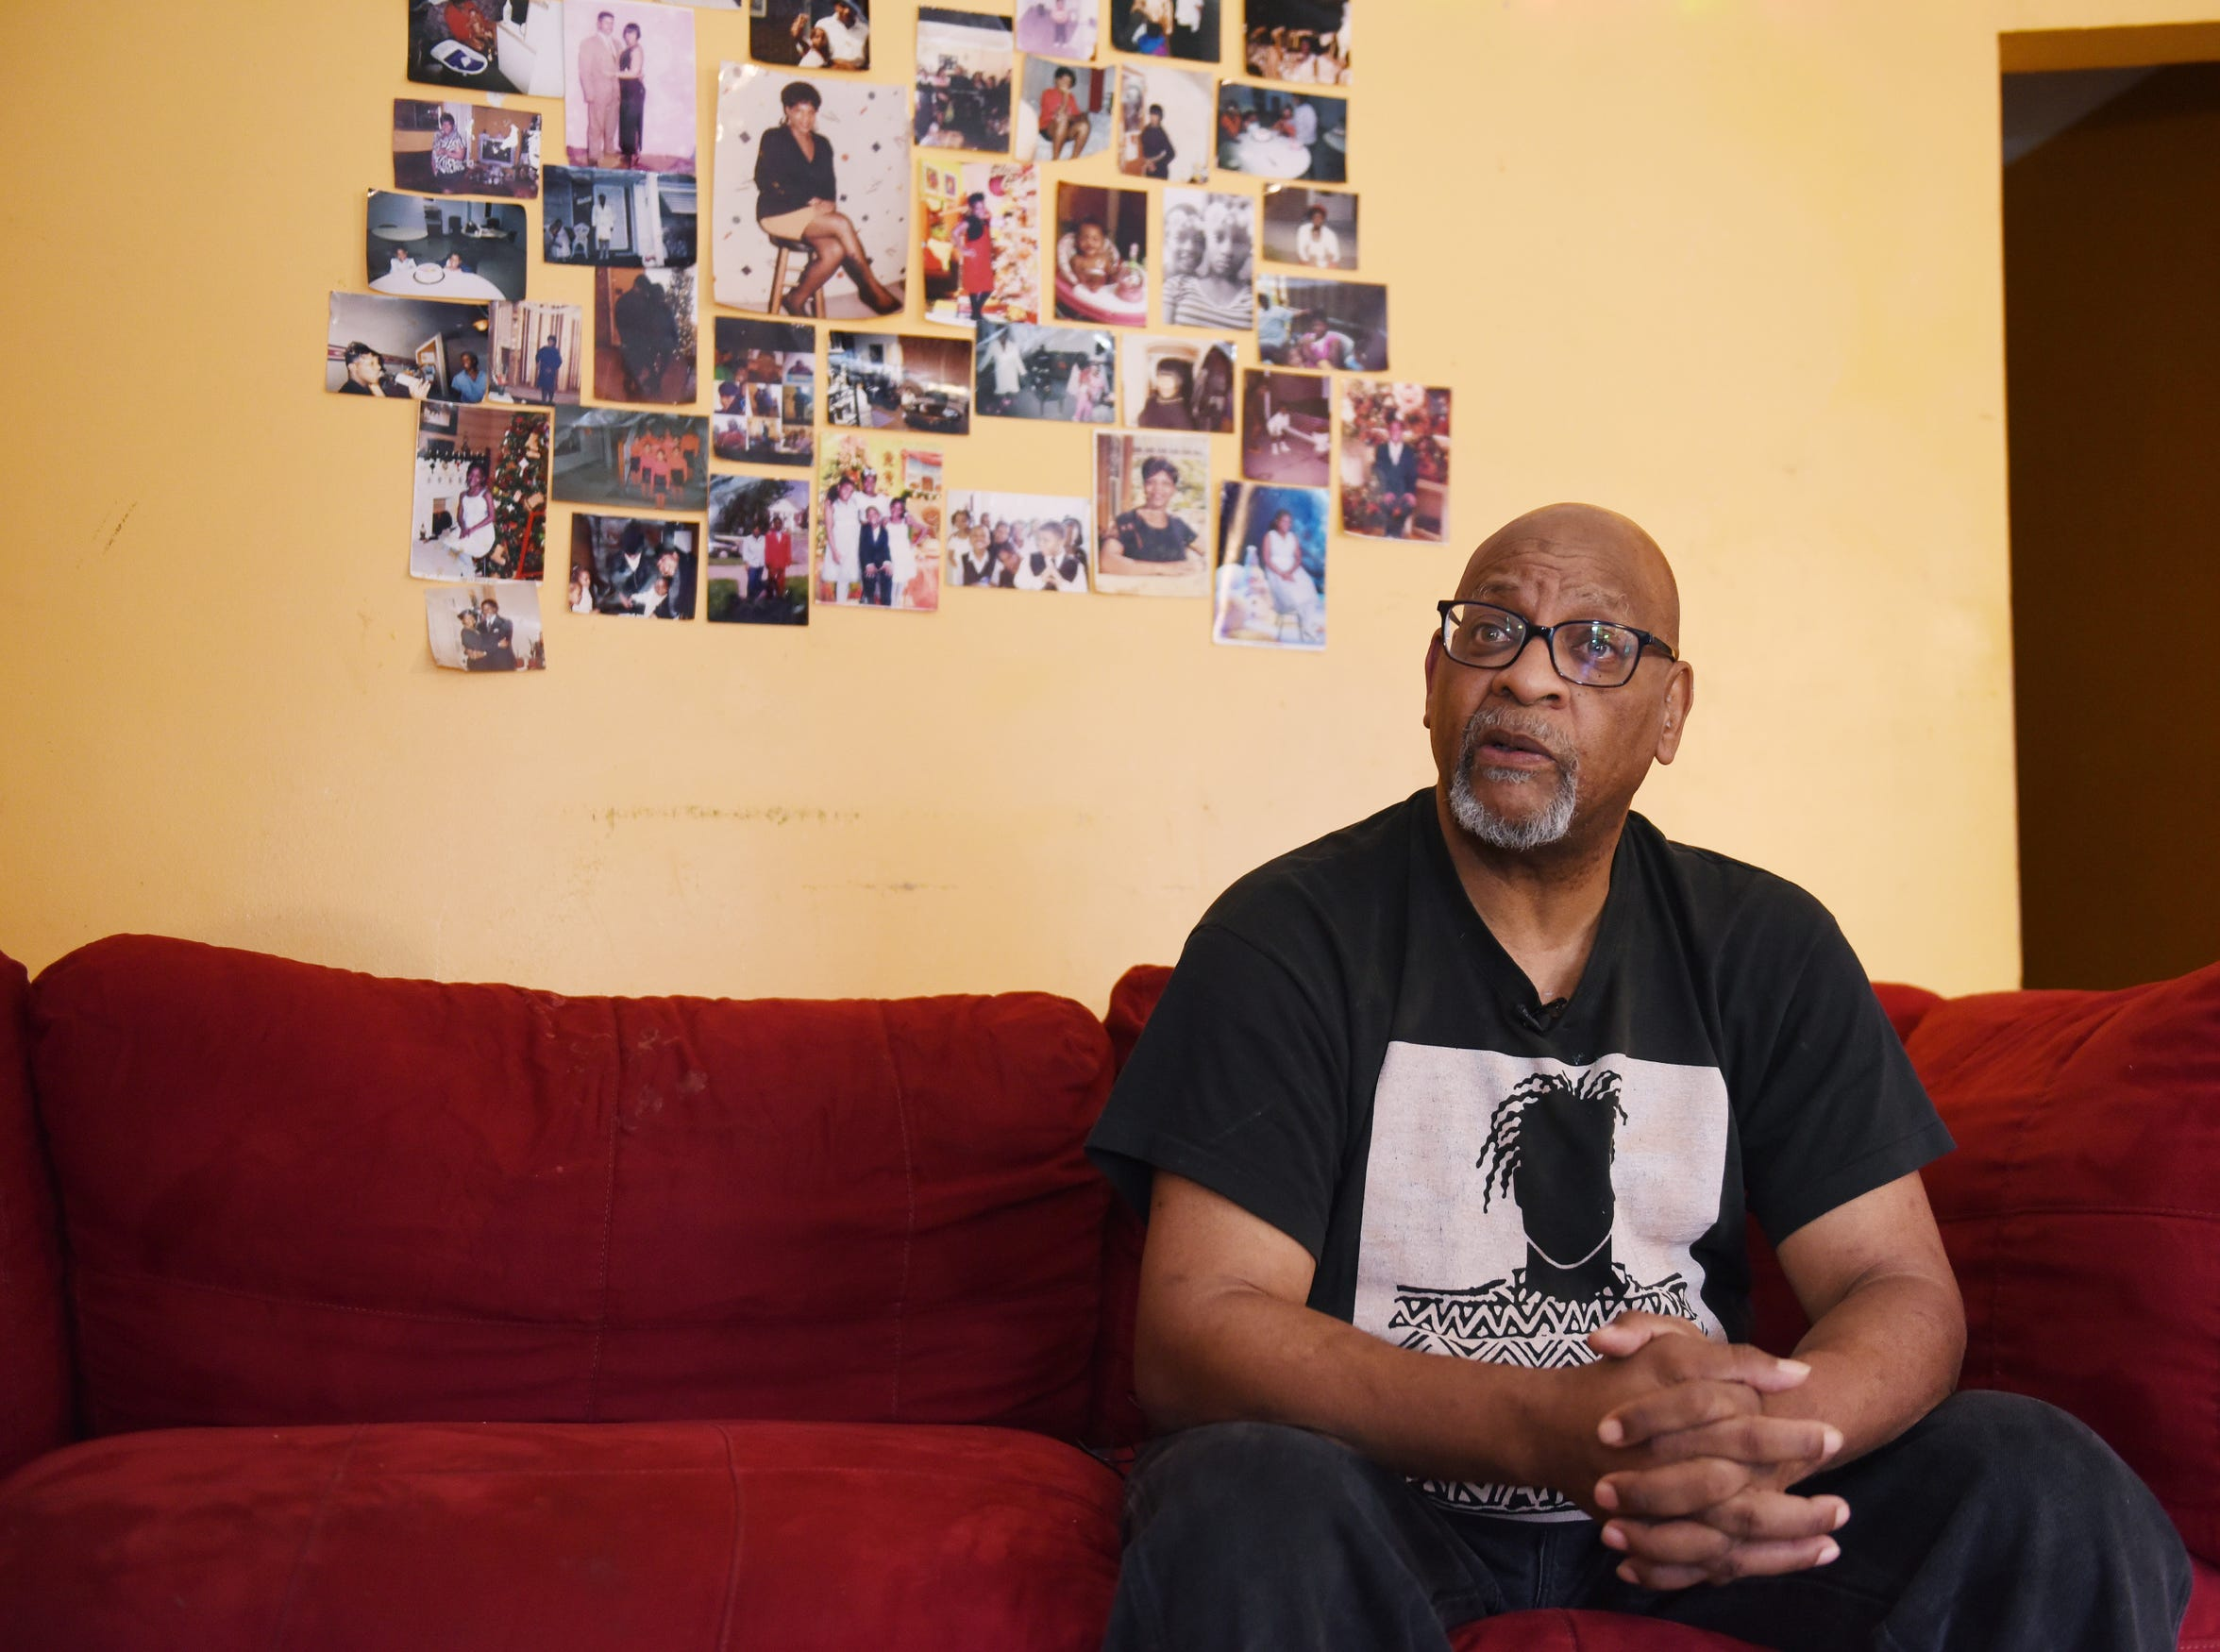 Breck Stevenson, 61, sits in the living room of his east-side Detroit bungalow and talks about how the City of Detroit overtaxed him. Stevenson was overtaxed by $5,300, more than the $4,200 he currently owes in back taxes on the home.